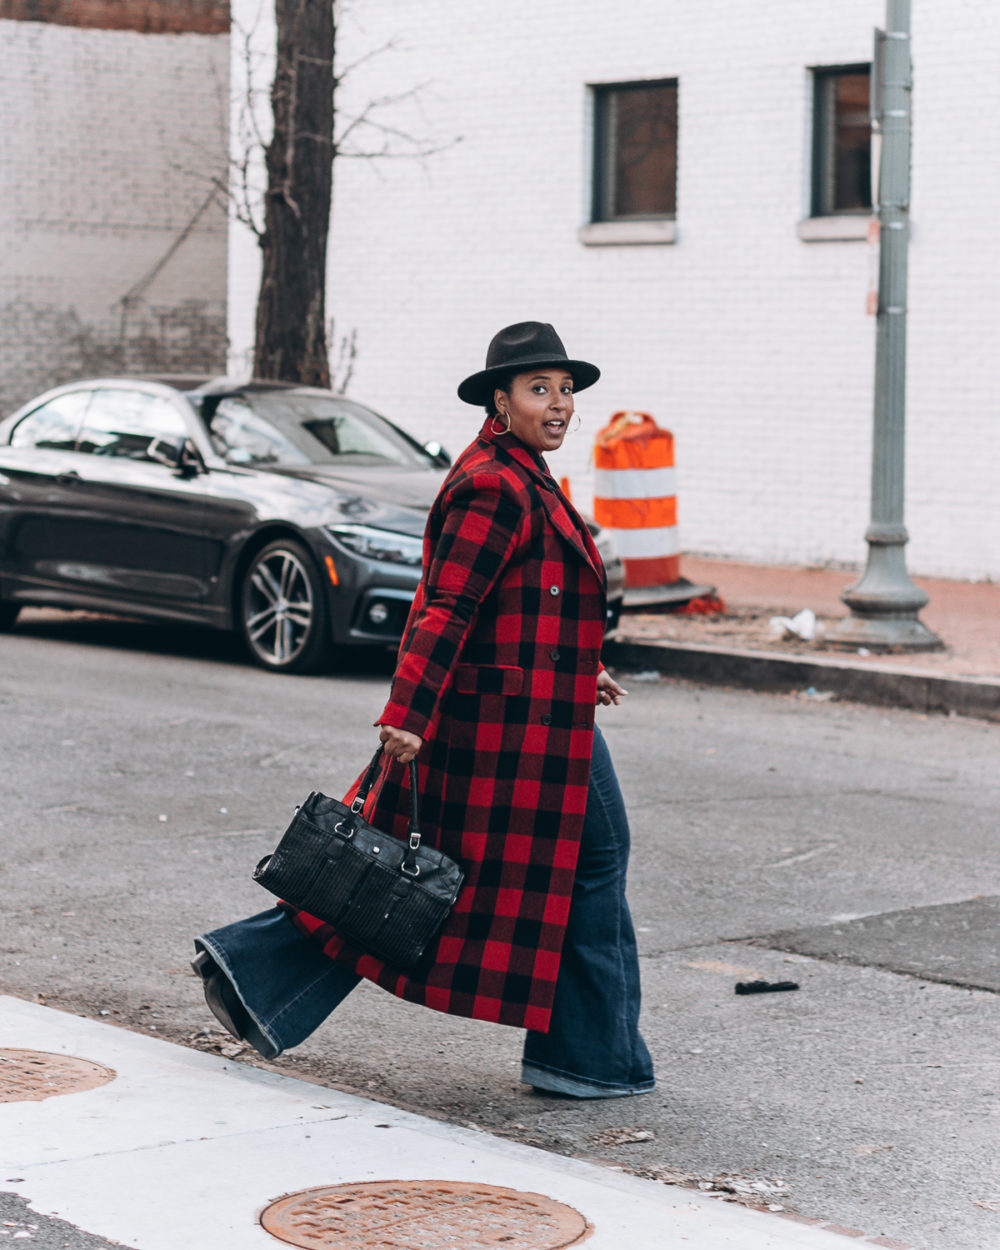 top washington dc blogger jen jean pierre wearing a double buffalo print red  and black shirt with matching long overcoat black fedora hat and bell bottom  ... 7bd982498104